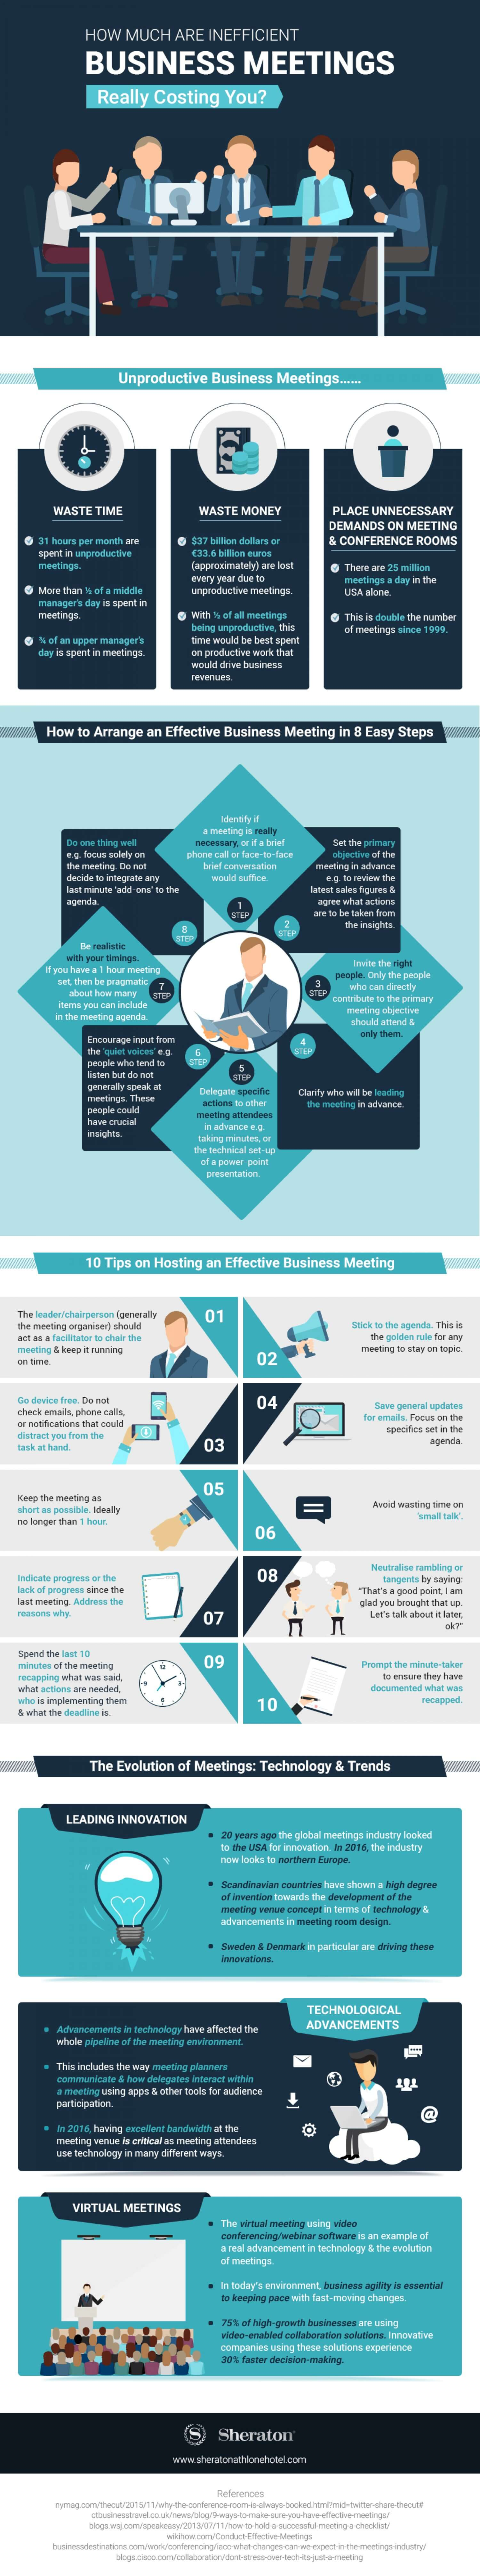 how-much-are-inefficient-business-meetings-really-costing-you_infographic-plaza